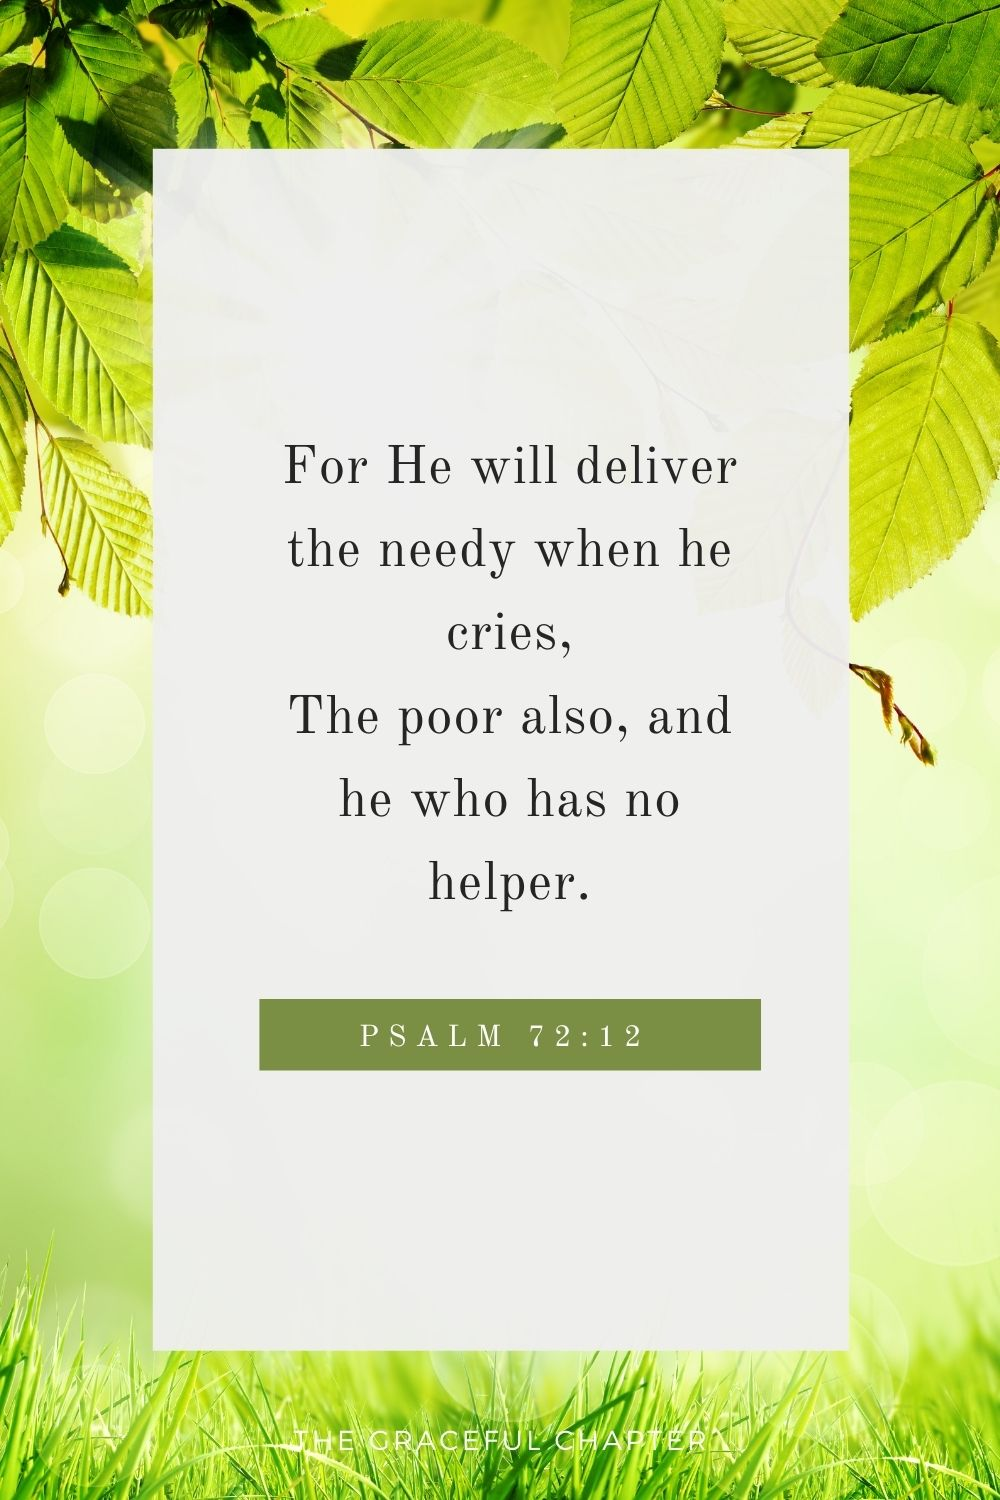 For He will deliver the needy when he cries, The poor also, and him who has no helper. Psalm 72:12